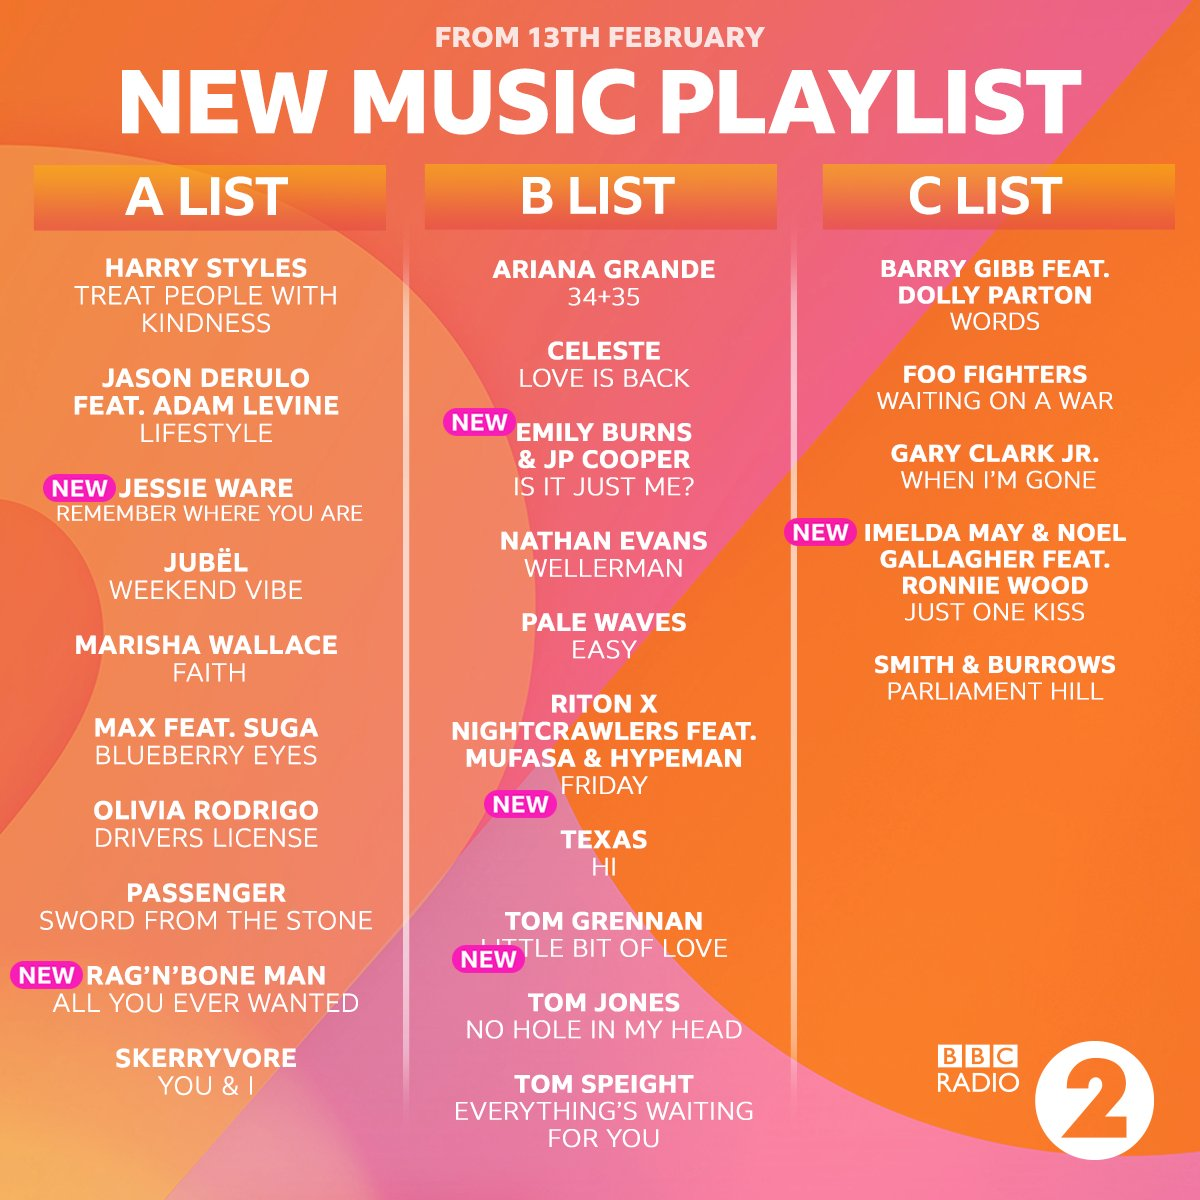 Heres our #newto2 playlist! 💖🎶 Any favourites?